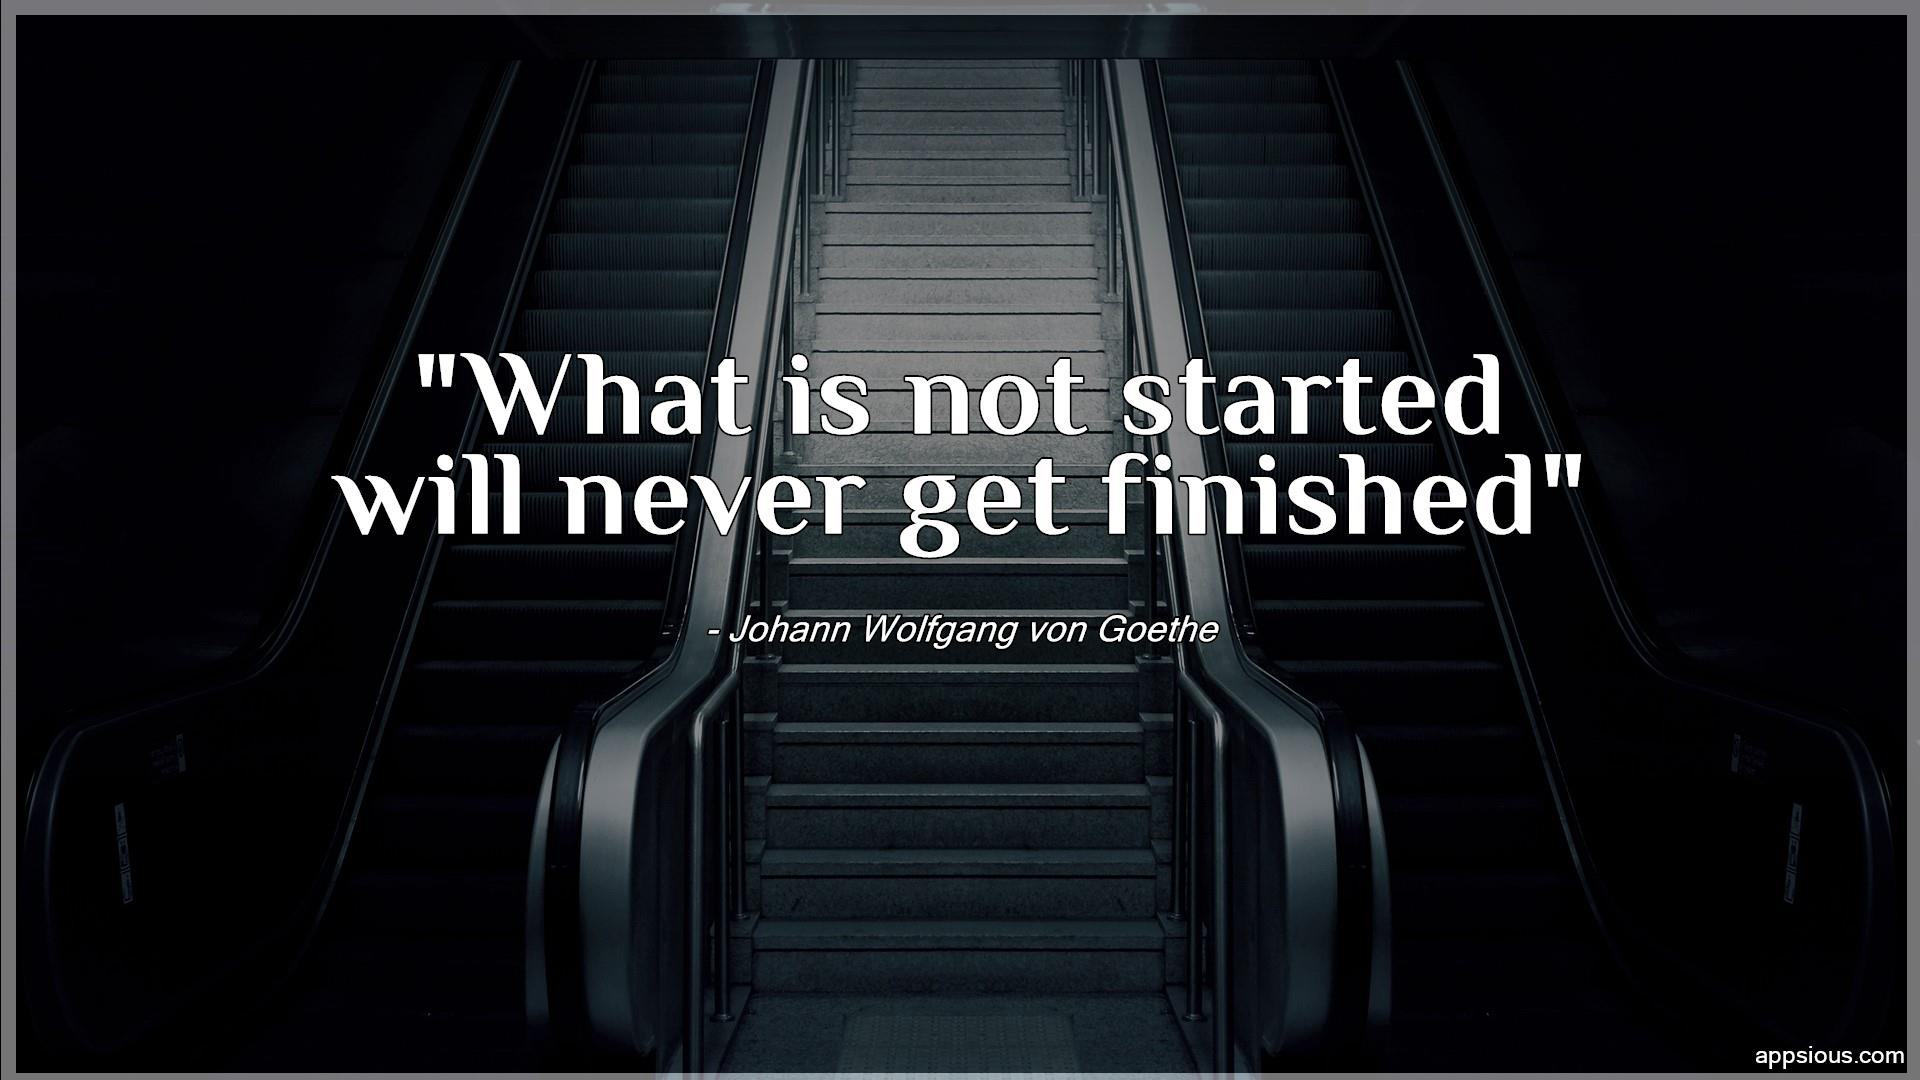 What is not started will never get finished